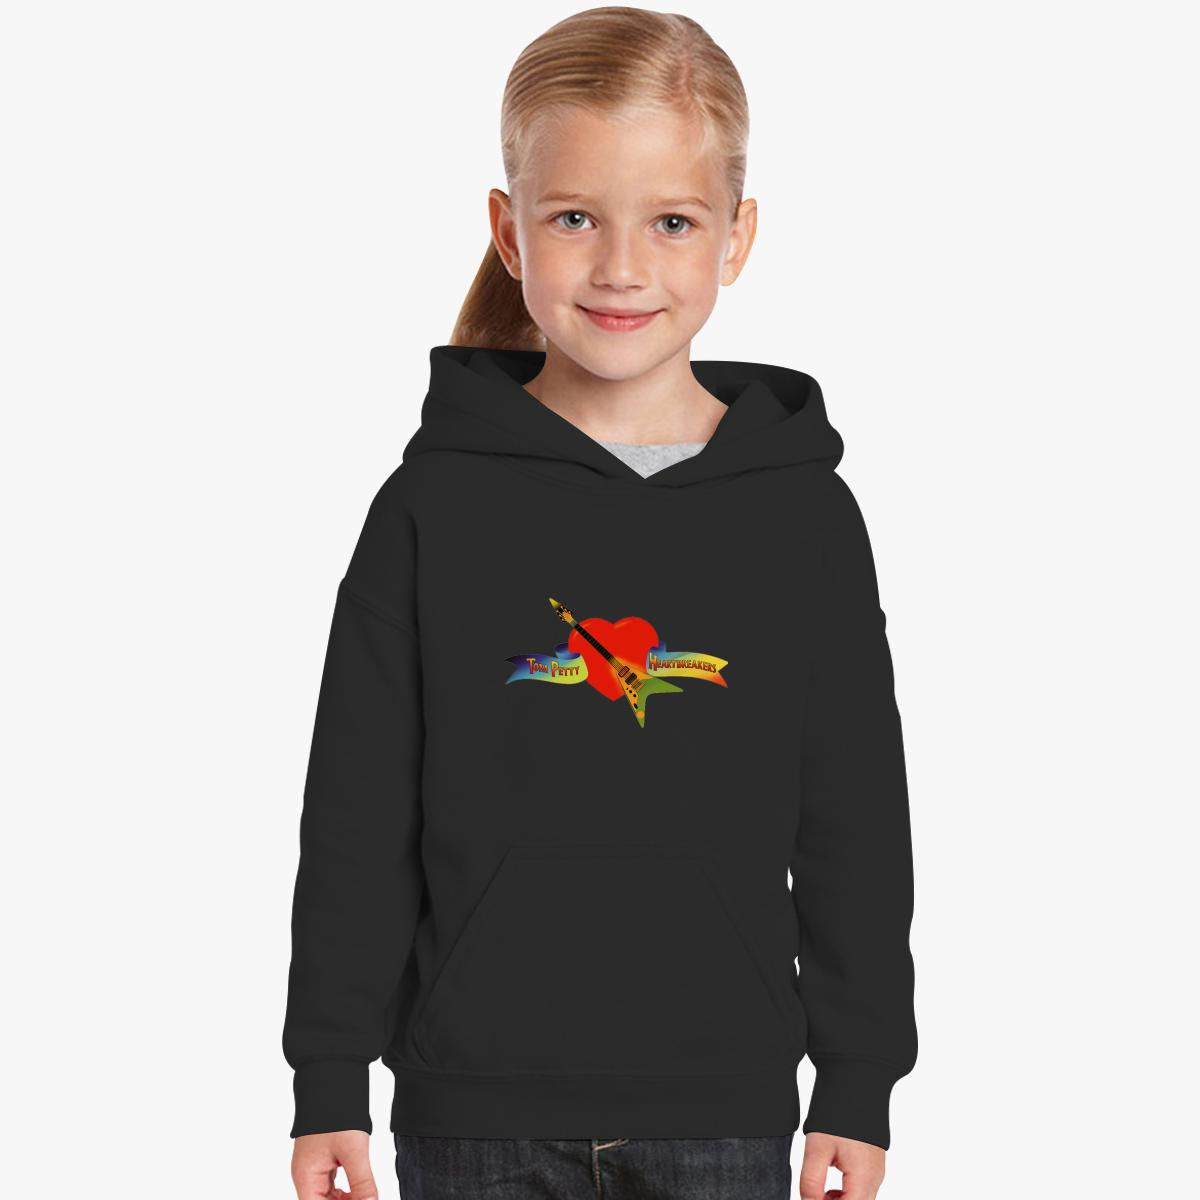 Tom Petty And The Heartbreakers Kids Hoodie